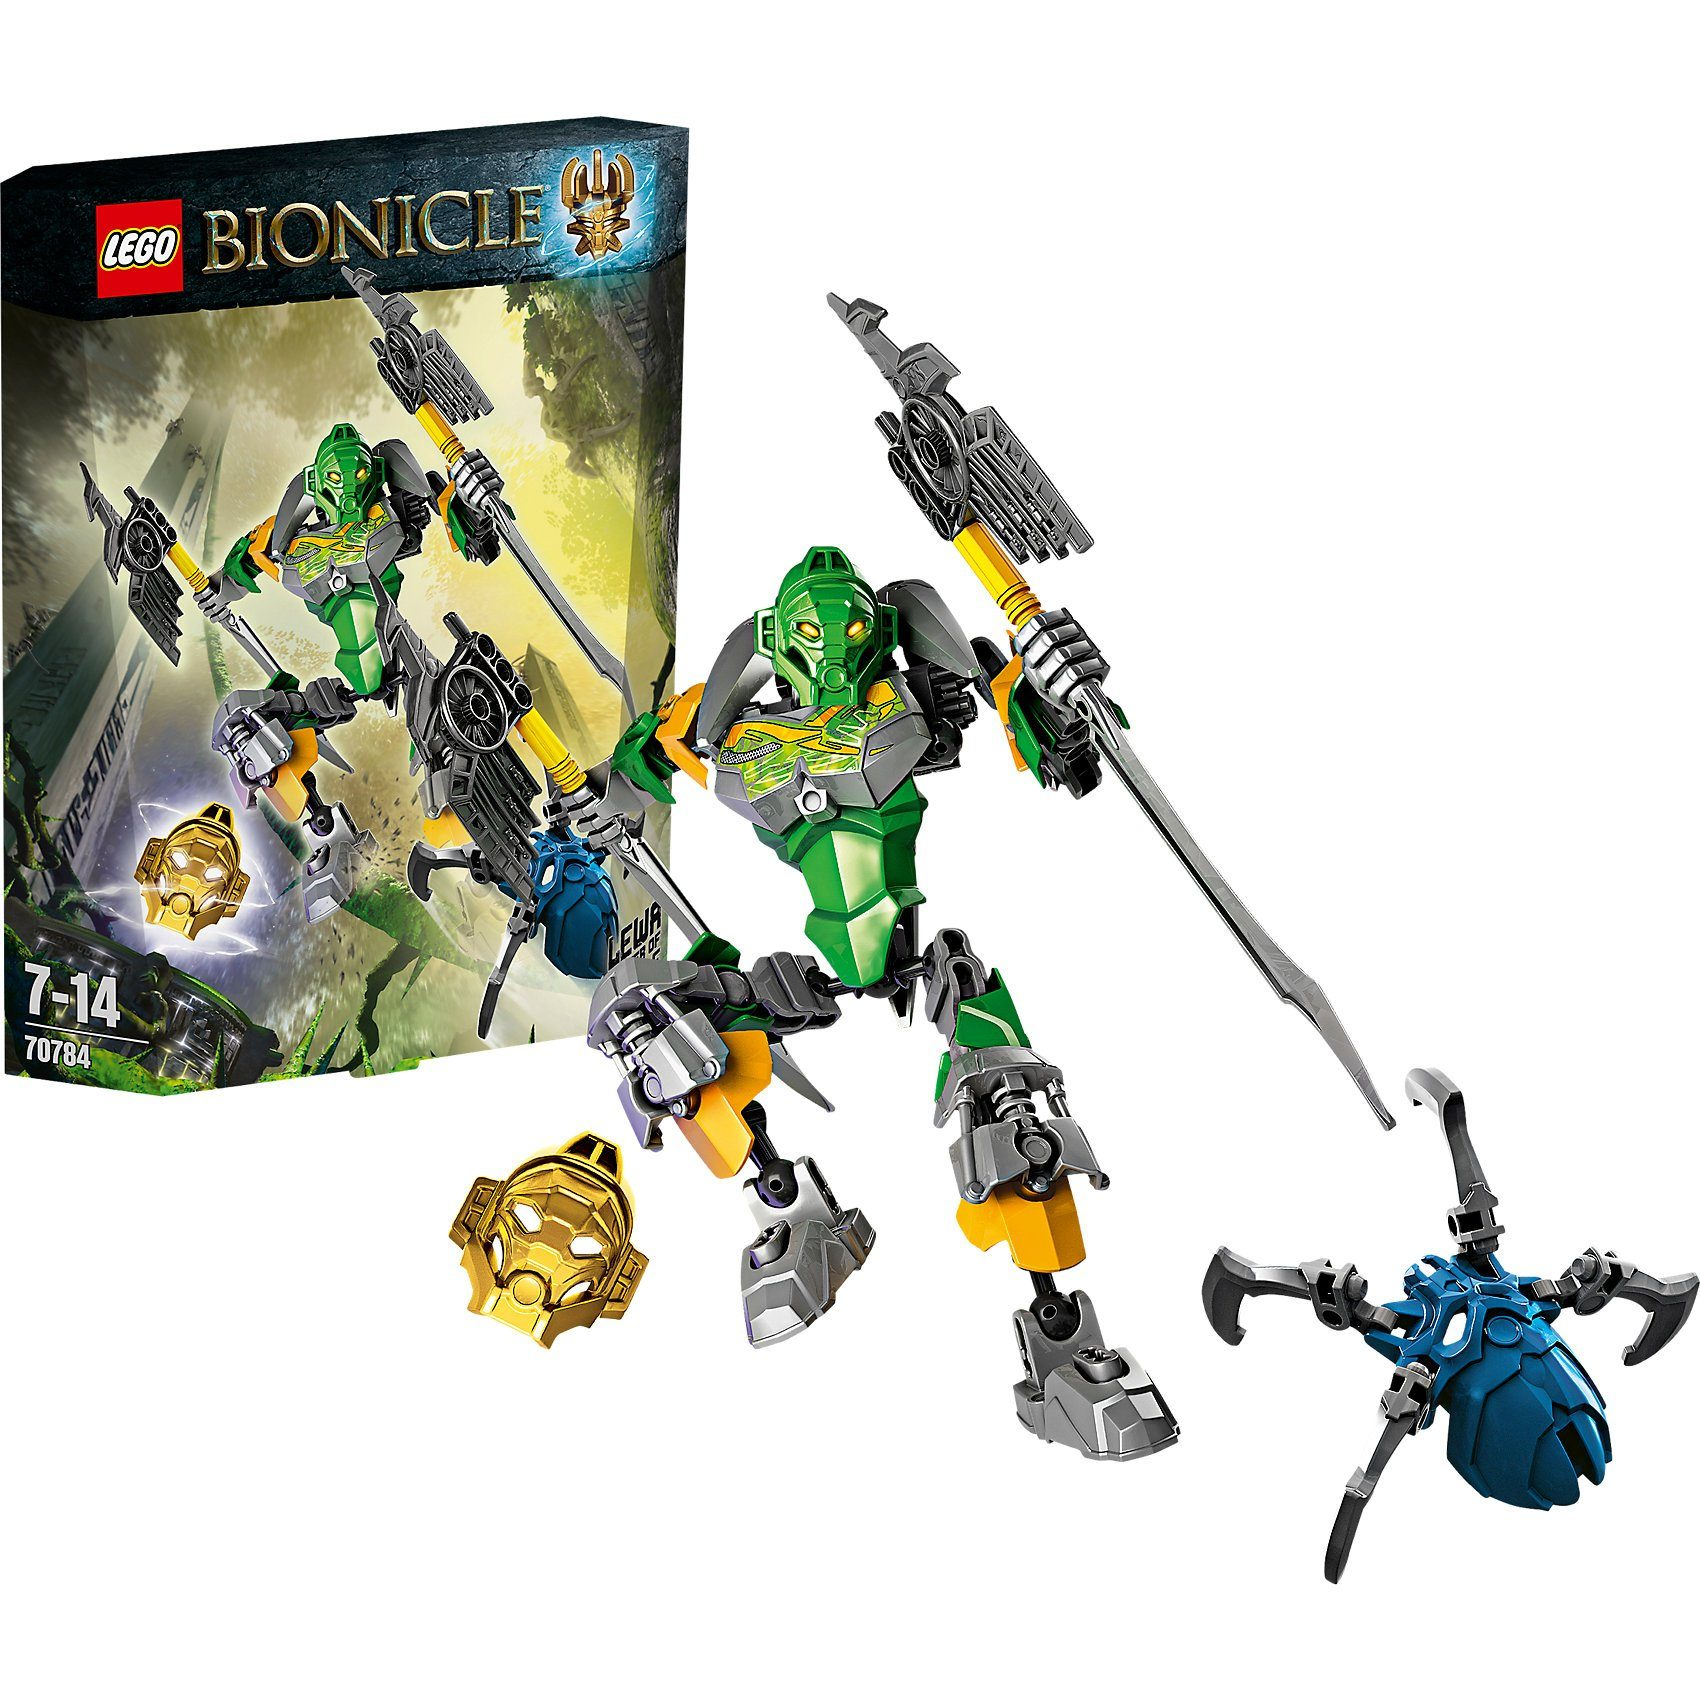 LEGO 70784 Bionicle: Lewa – Meister des Dschungels